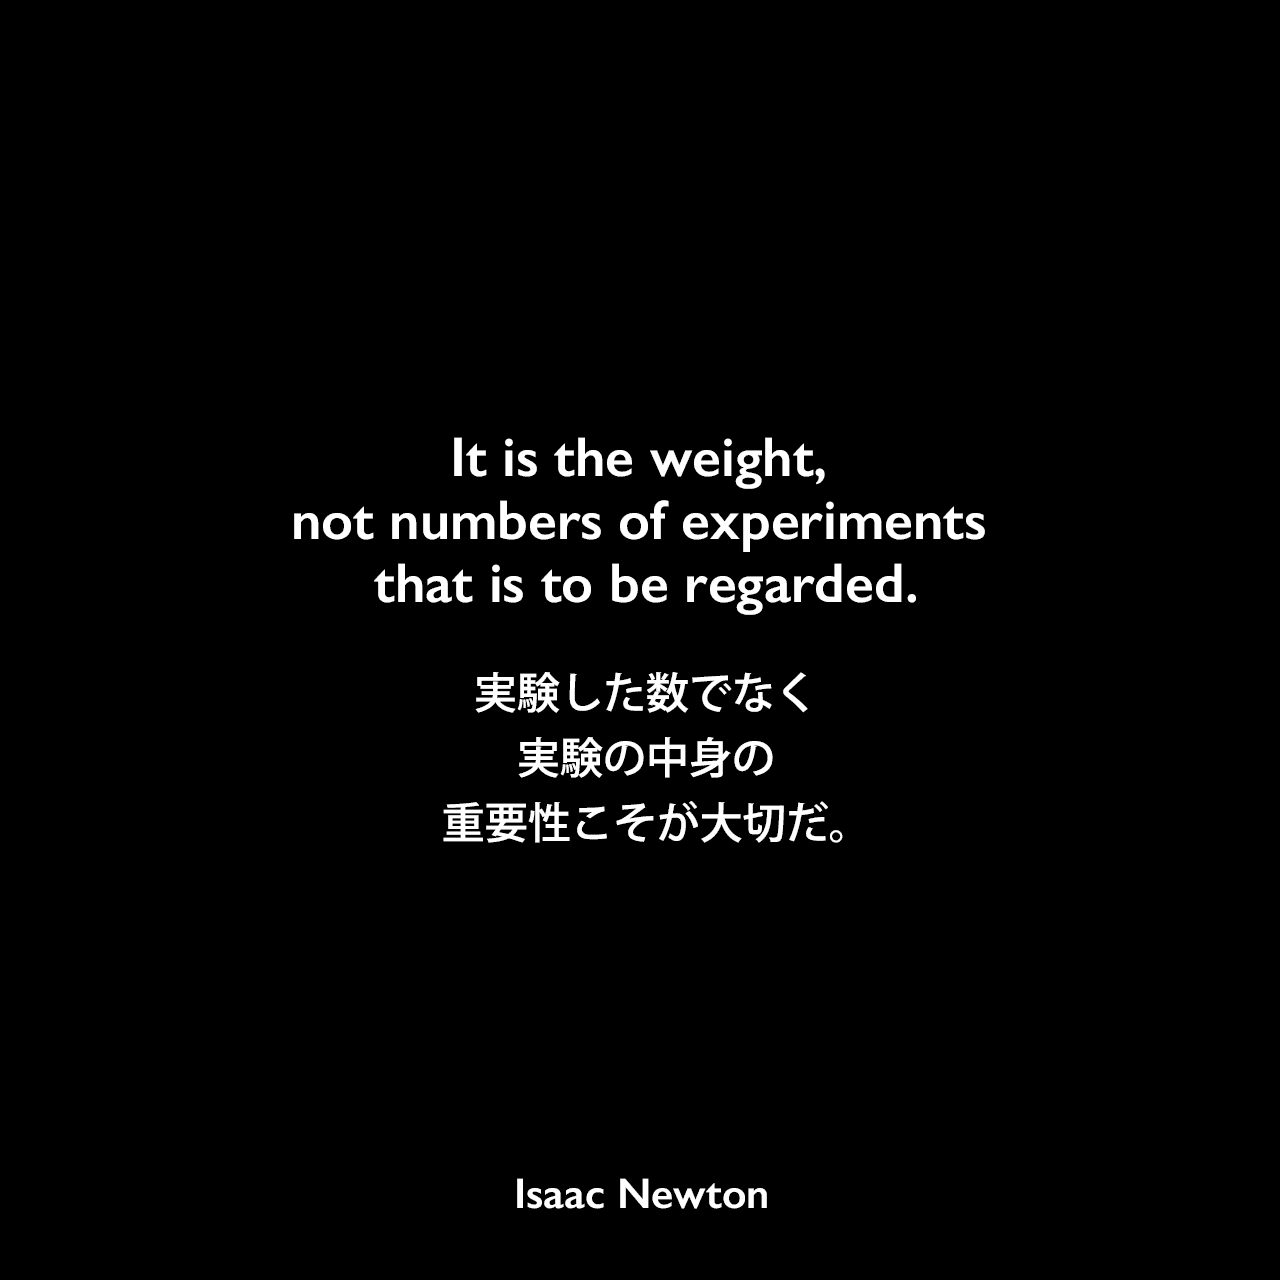 It is the weight, not numbers of experiments that is to be regarded.実験した数でなく、実験の中身の重要性こそが大切だ。Isaac Newton